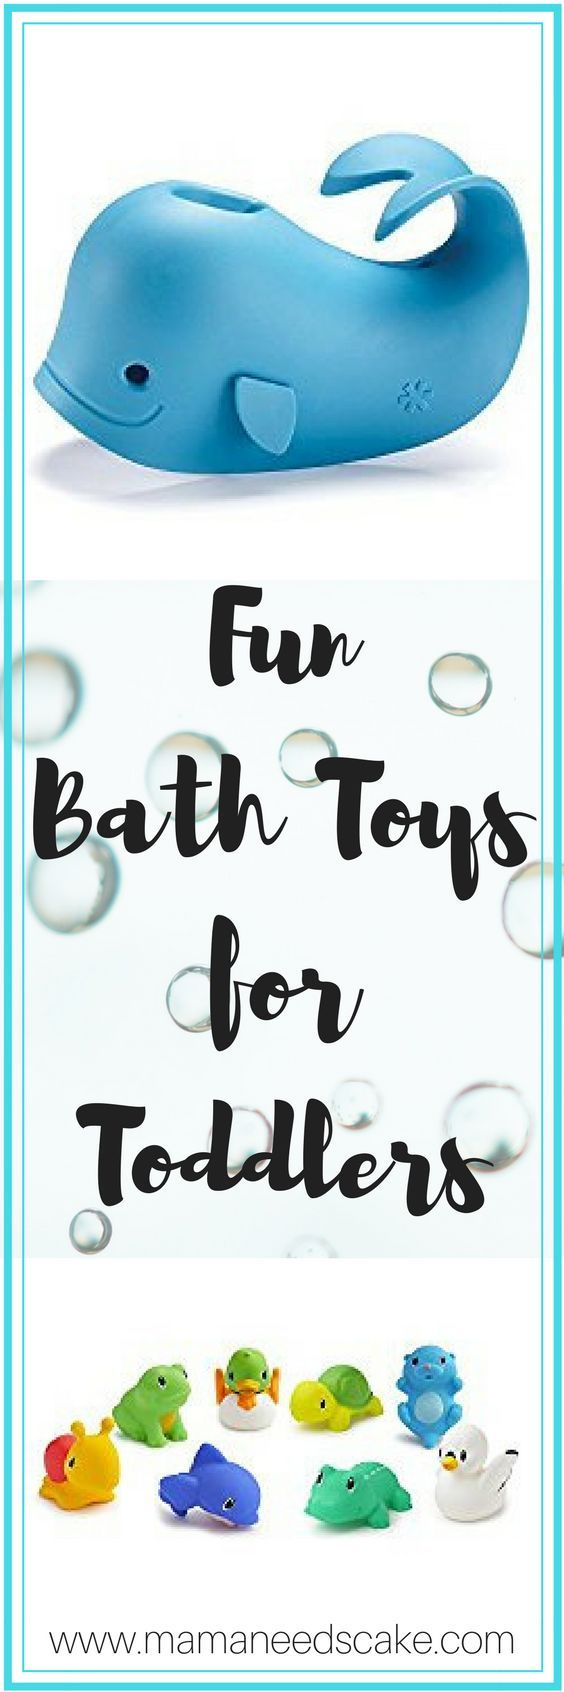 Bath toy storage that transforms to guest luxury bathroom on - Fun Bath Toys For Toddlers